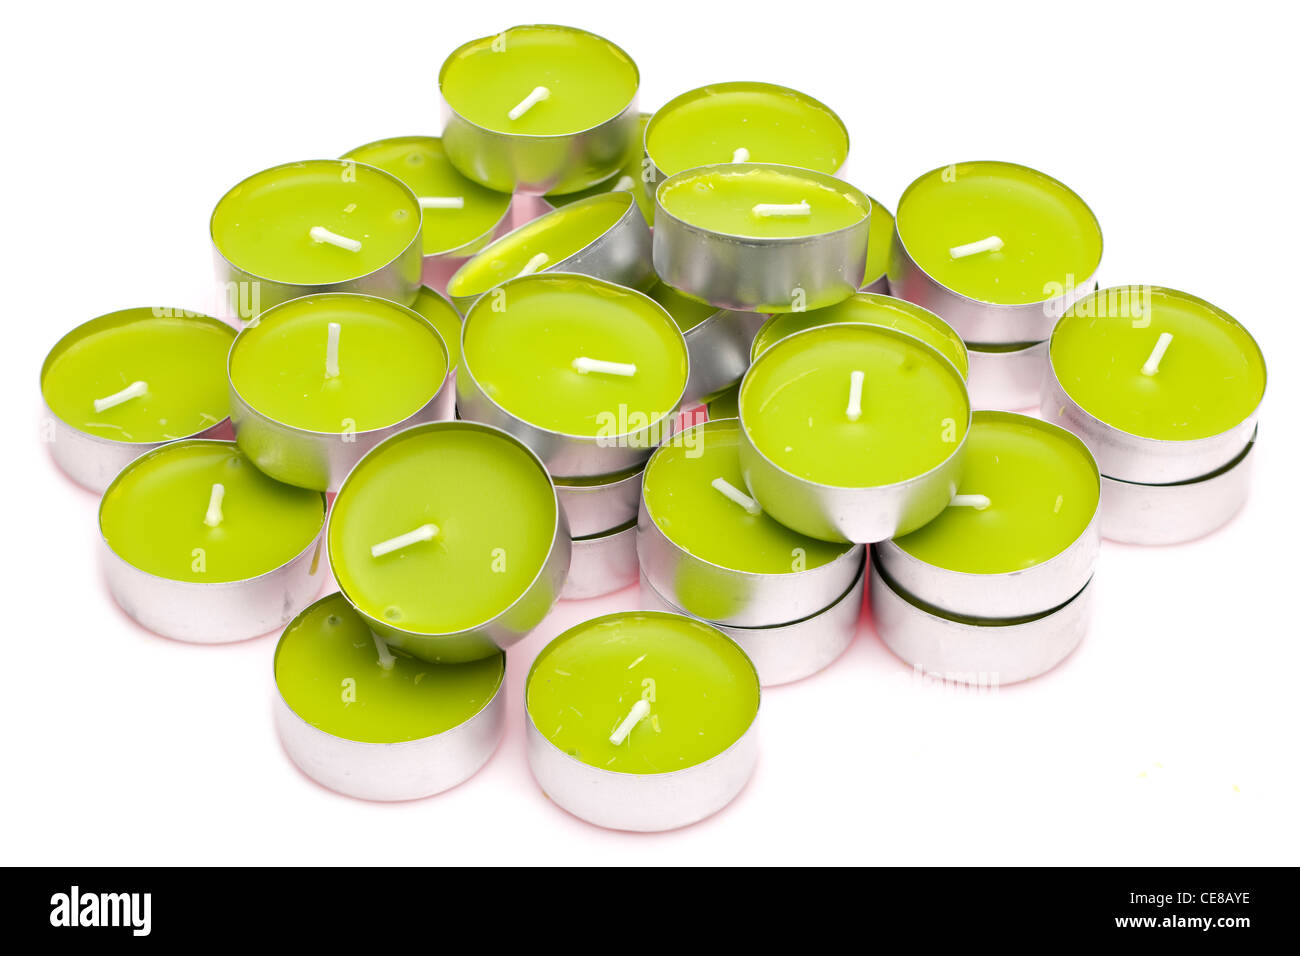 pile green tea light candles - Stock Image